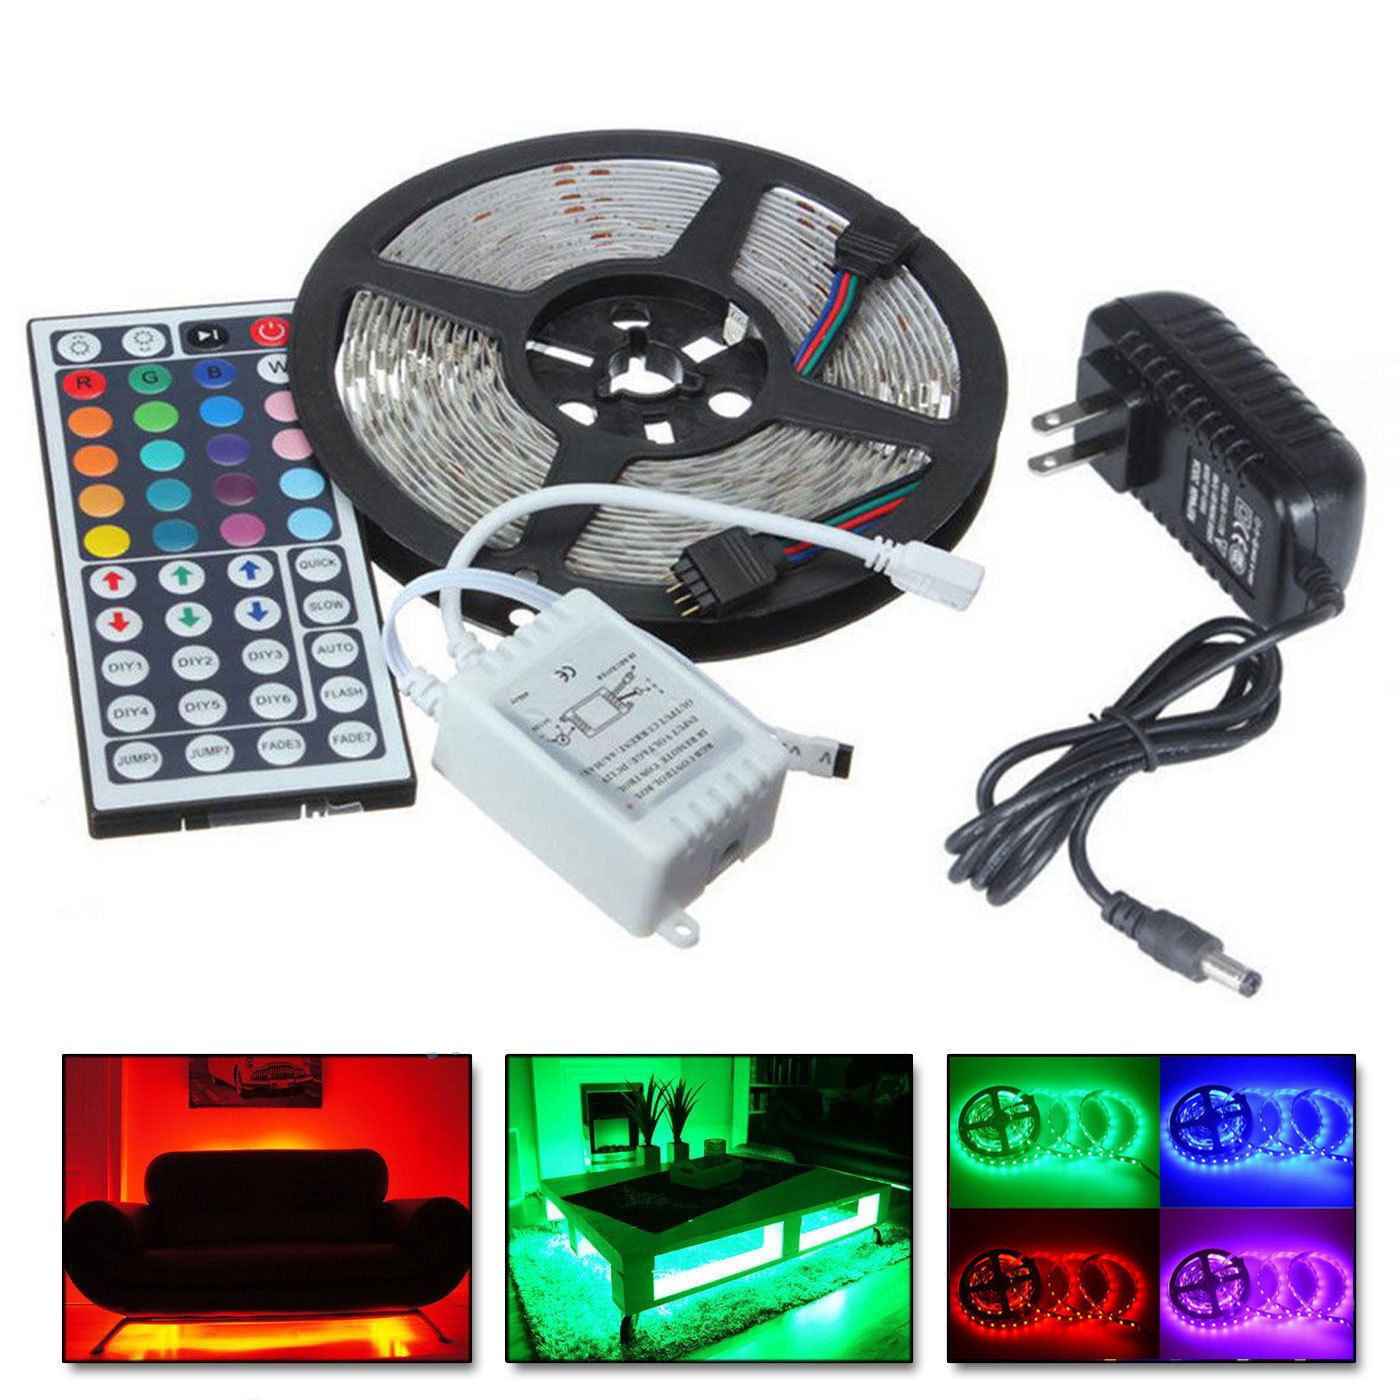 CASUNG 5M RGB 5050 Non Waterproof LED Strip light SMD with 44 Key Remote & 12V Power supply,Color Changing Flexible strip with White color